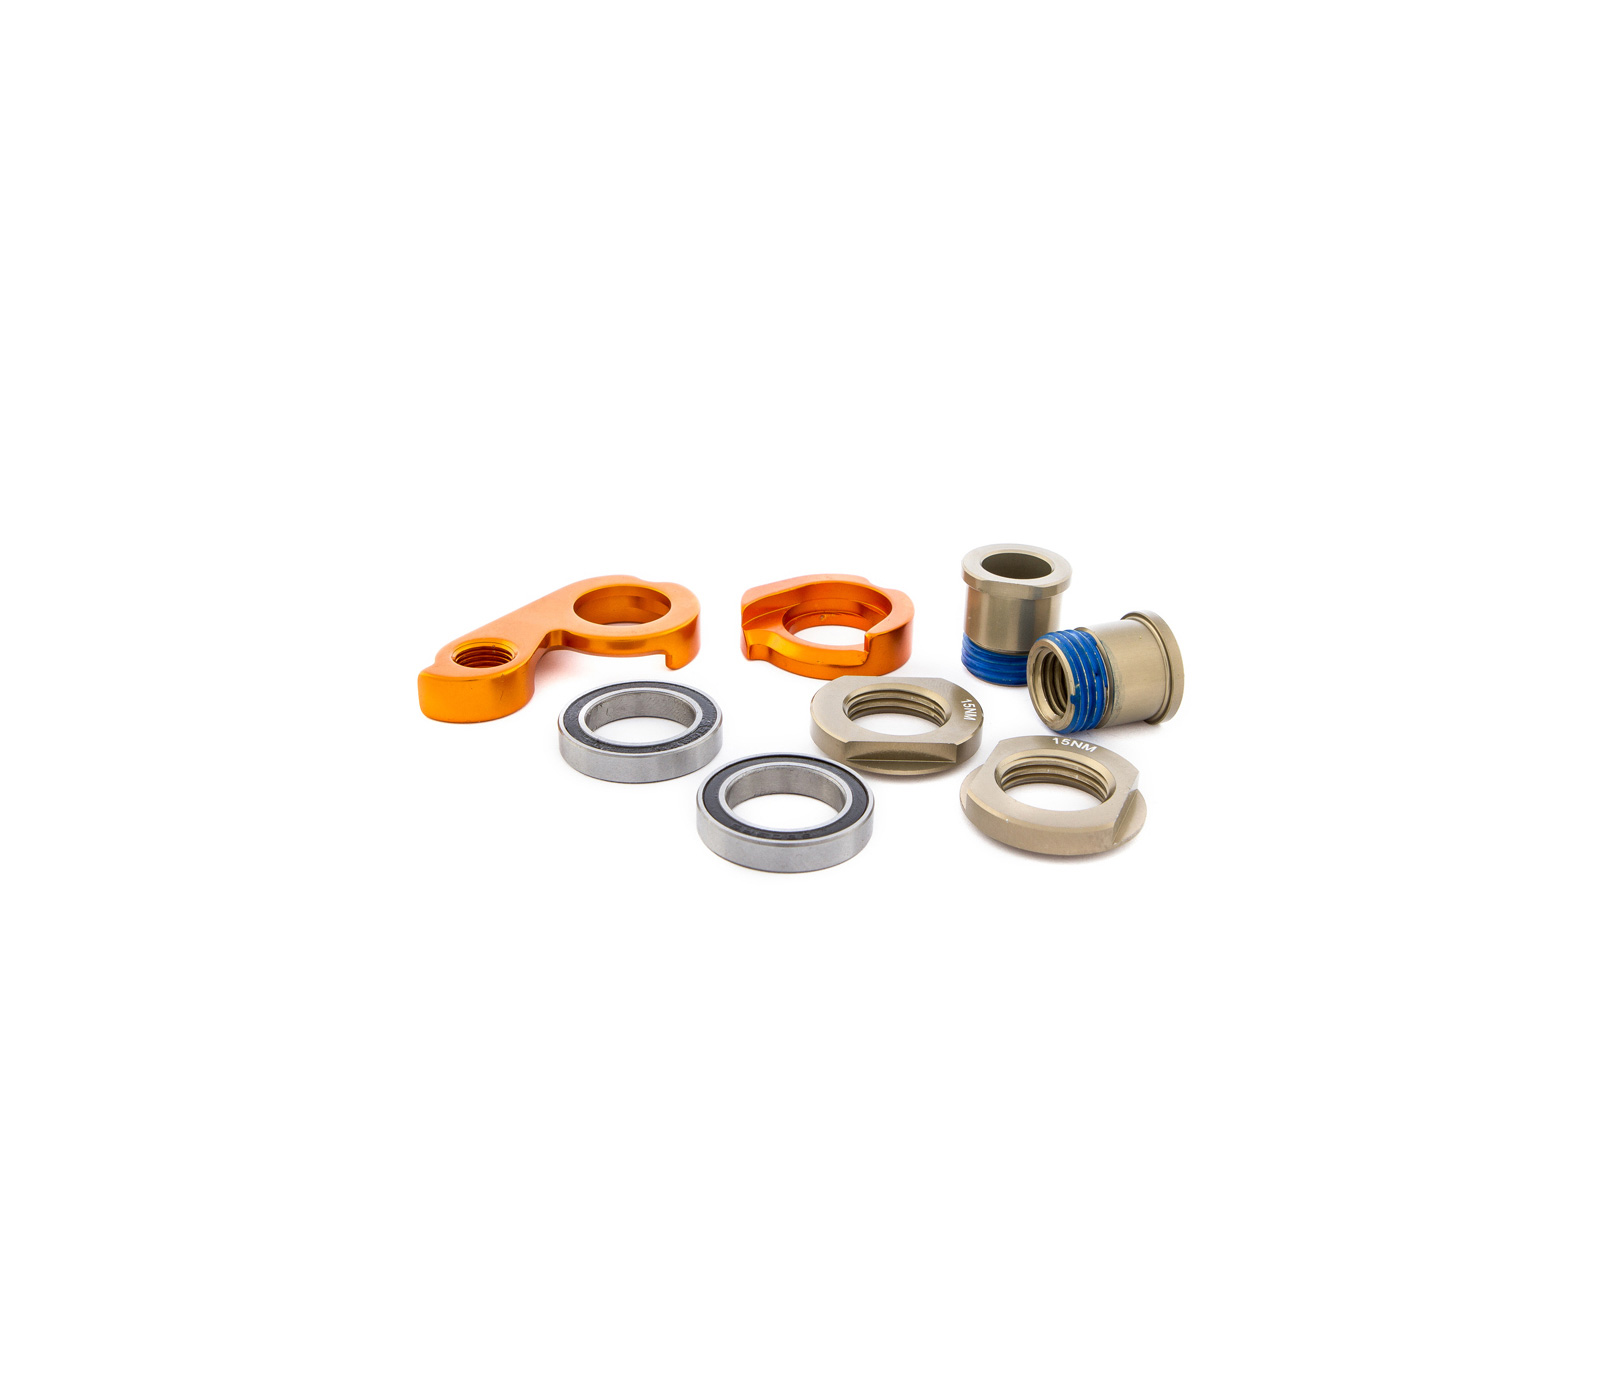 ORANGE DROP OUT KIT FOR AXLE X12 FOR OCCAM MODELS